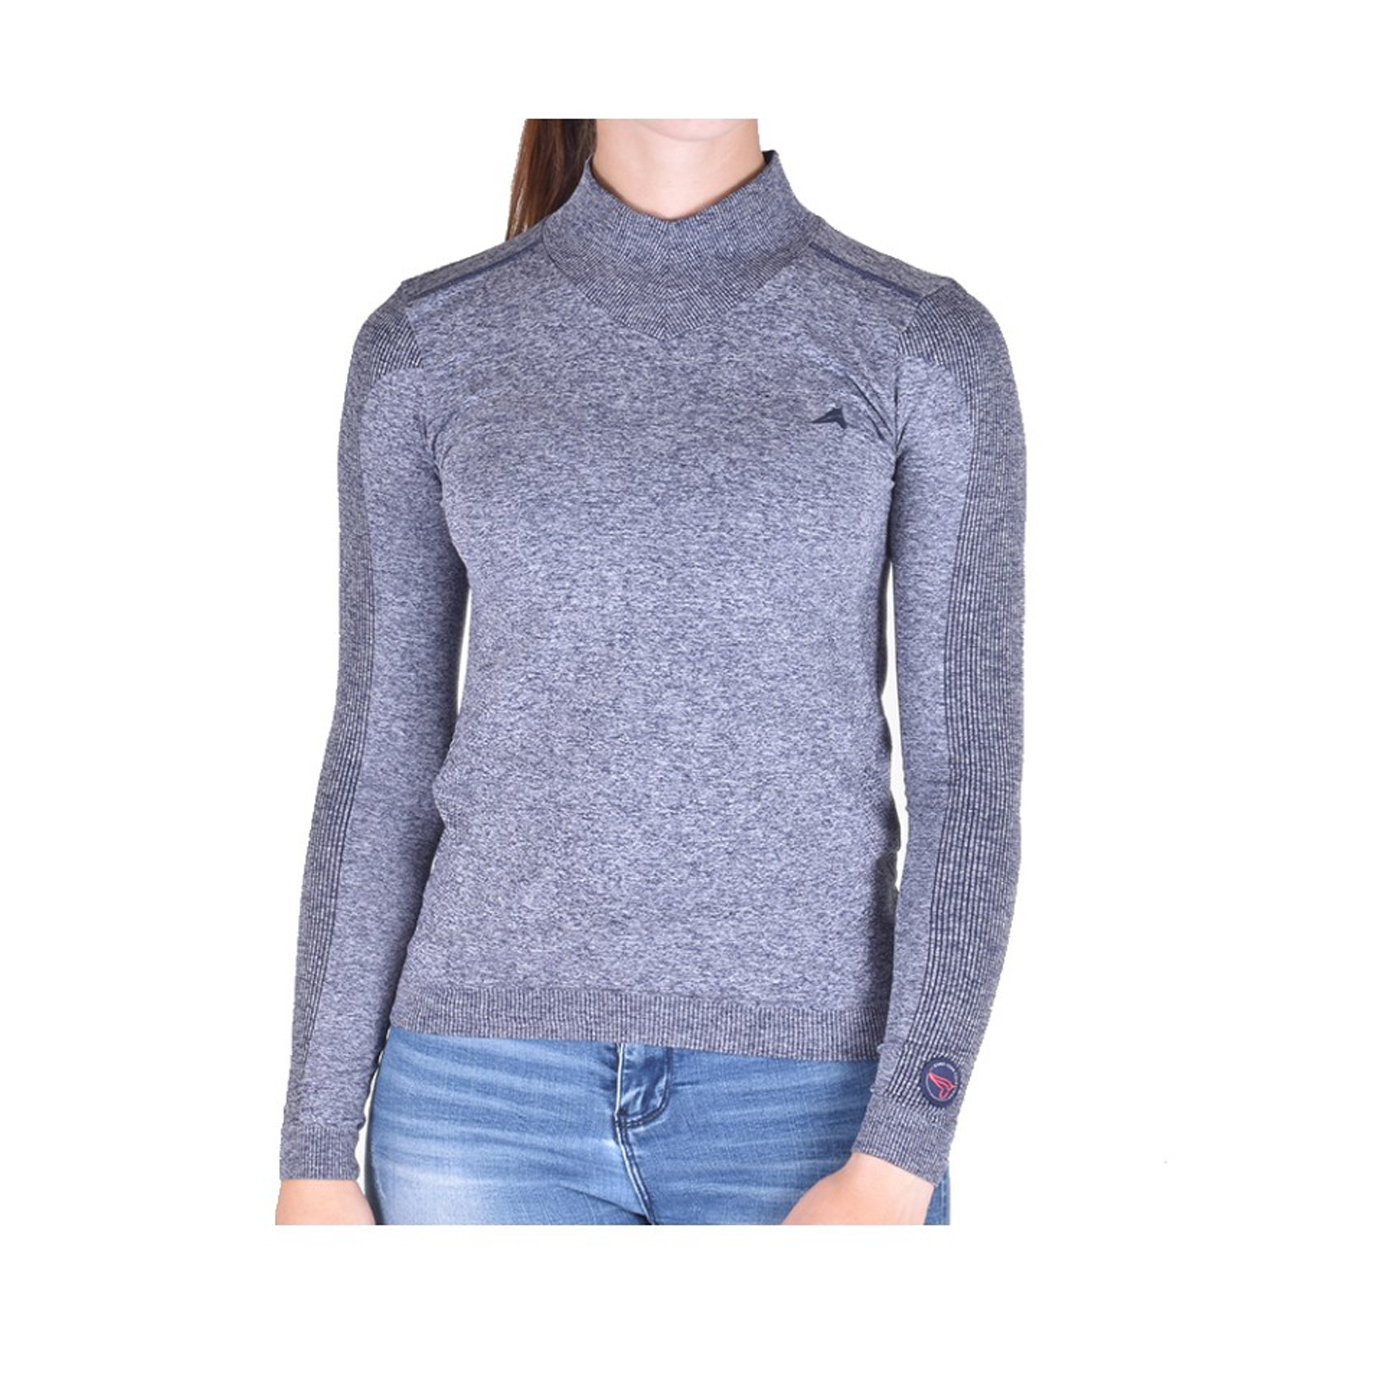 Euro-Star Mellie Long-Sleeved Equestrian Baselayer